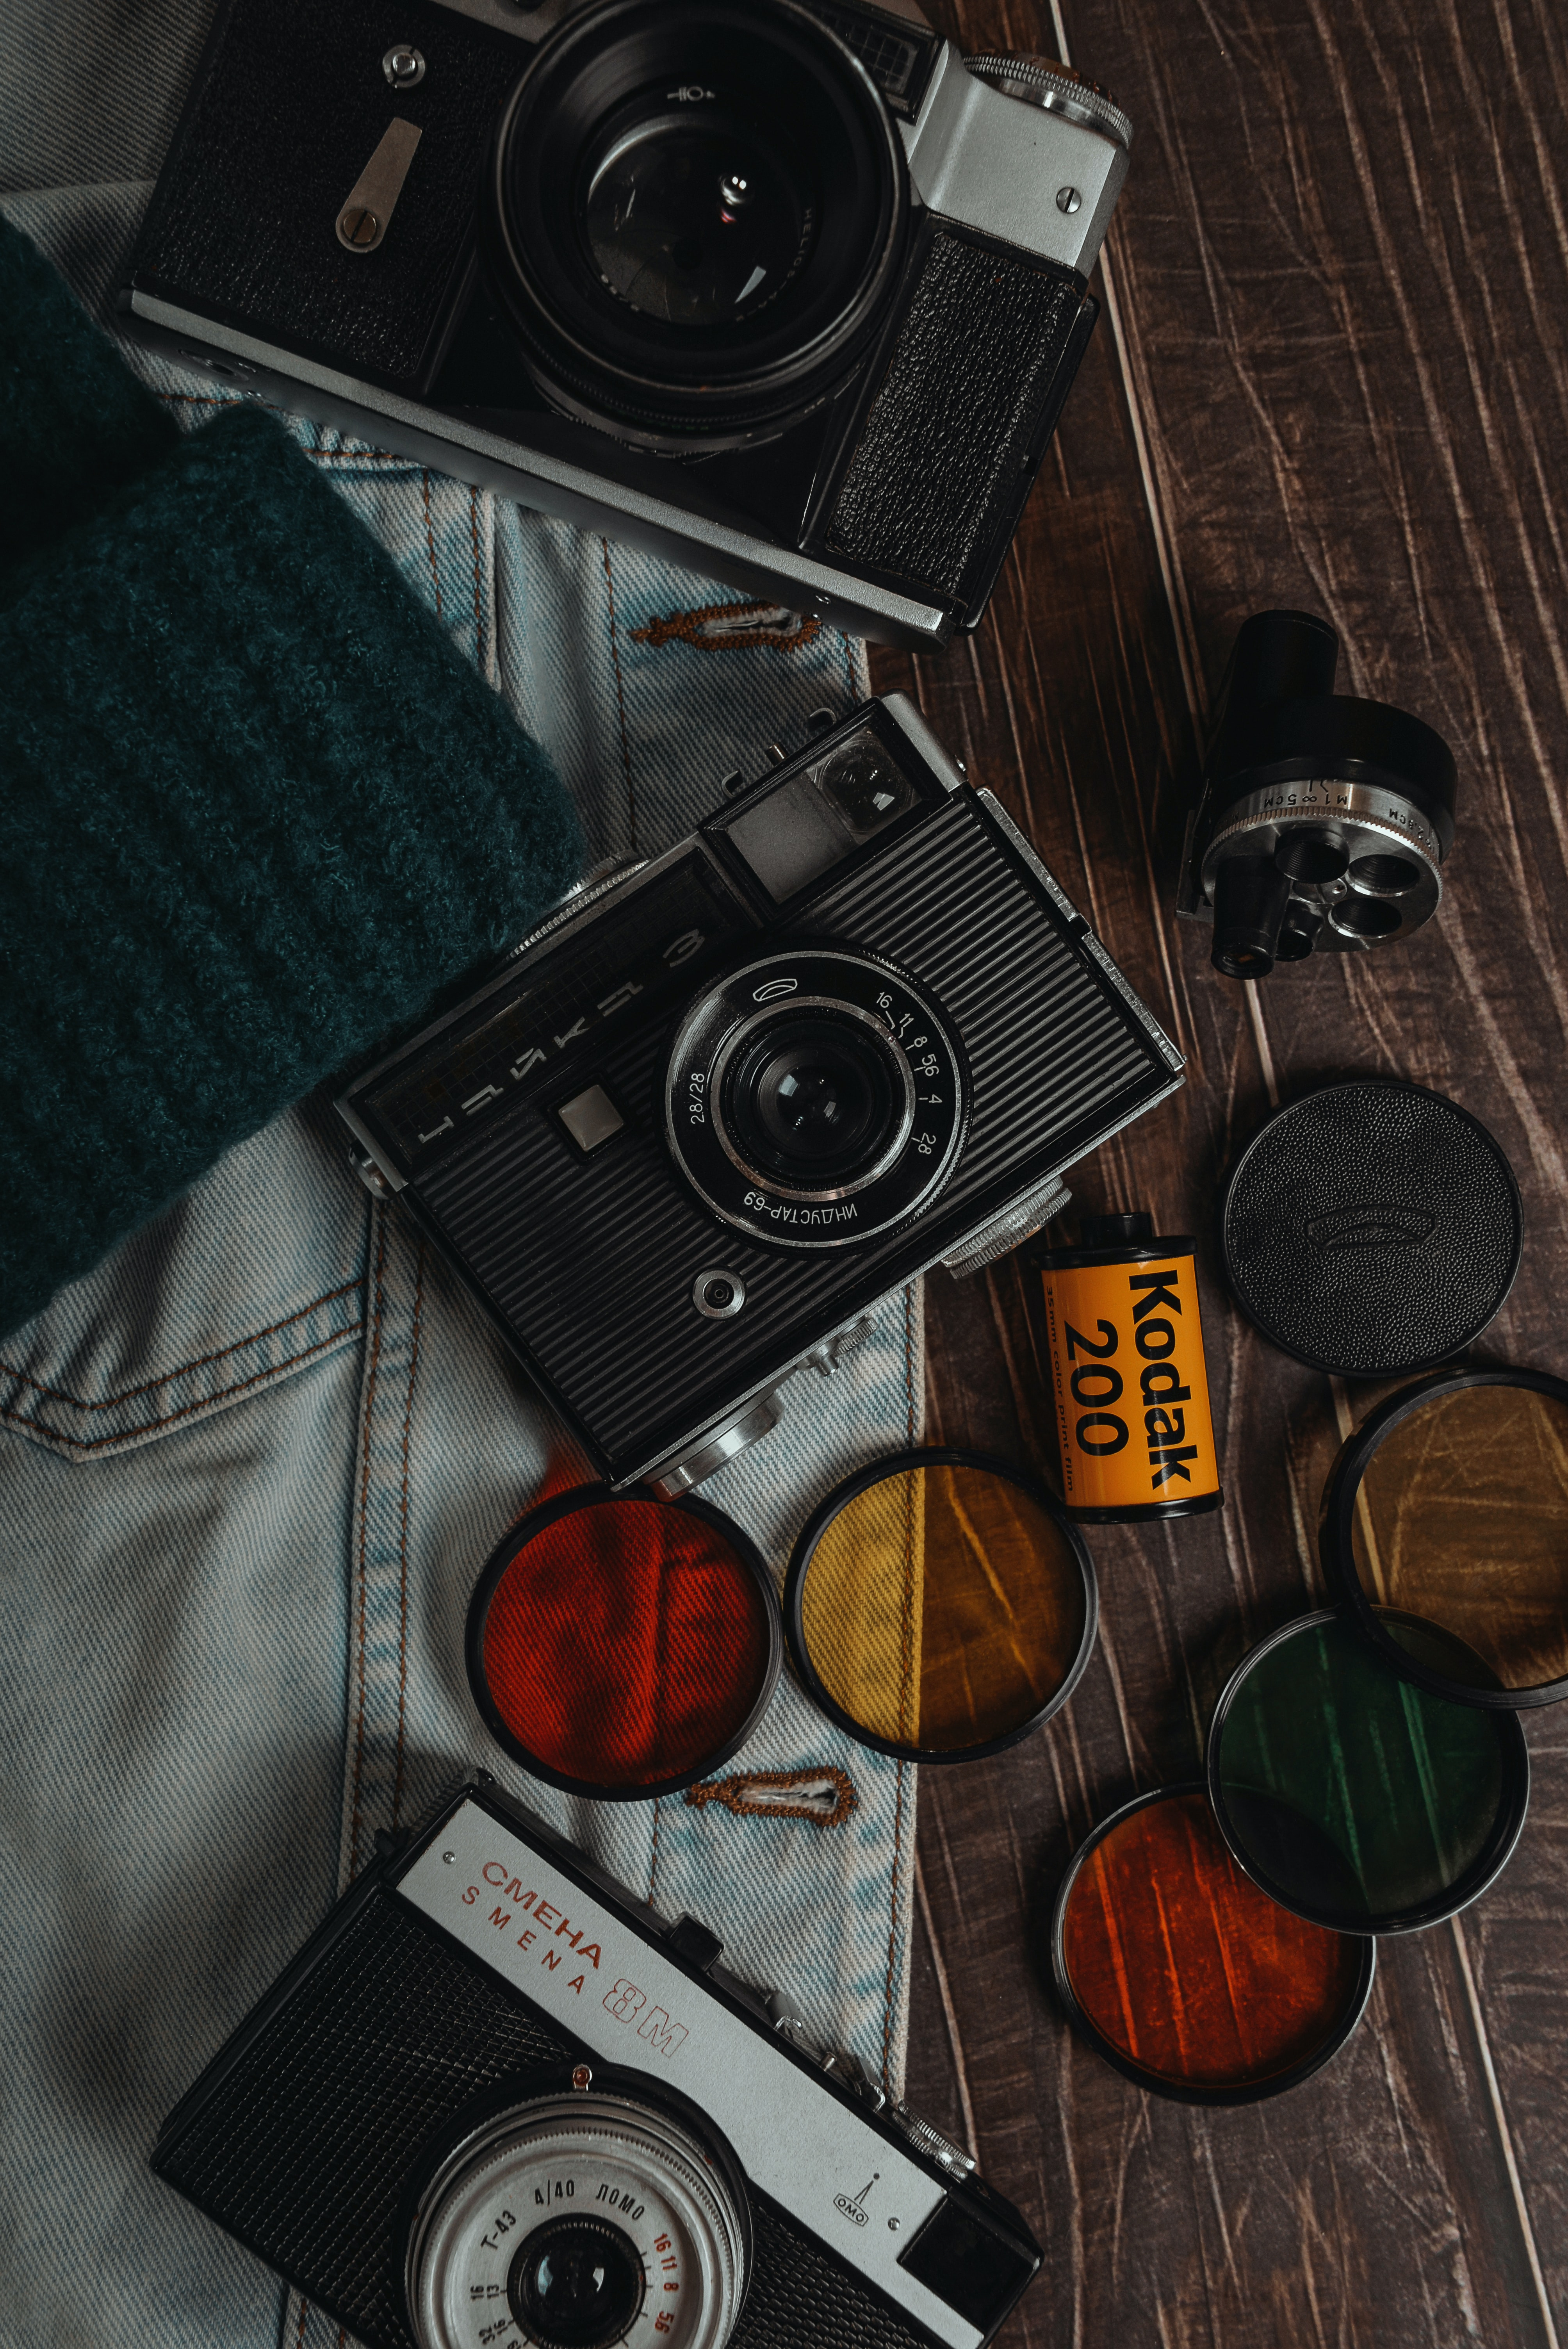 55293 download wallpaper Old, Retro, Lenses, Technologies, Technology, Cameras screensavers and pictures for free